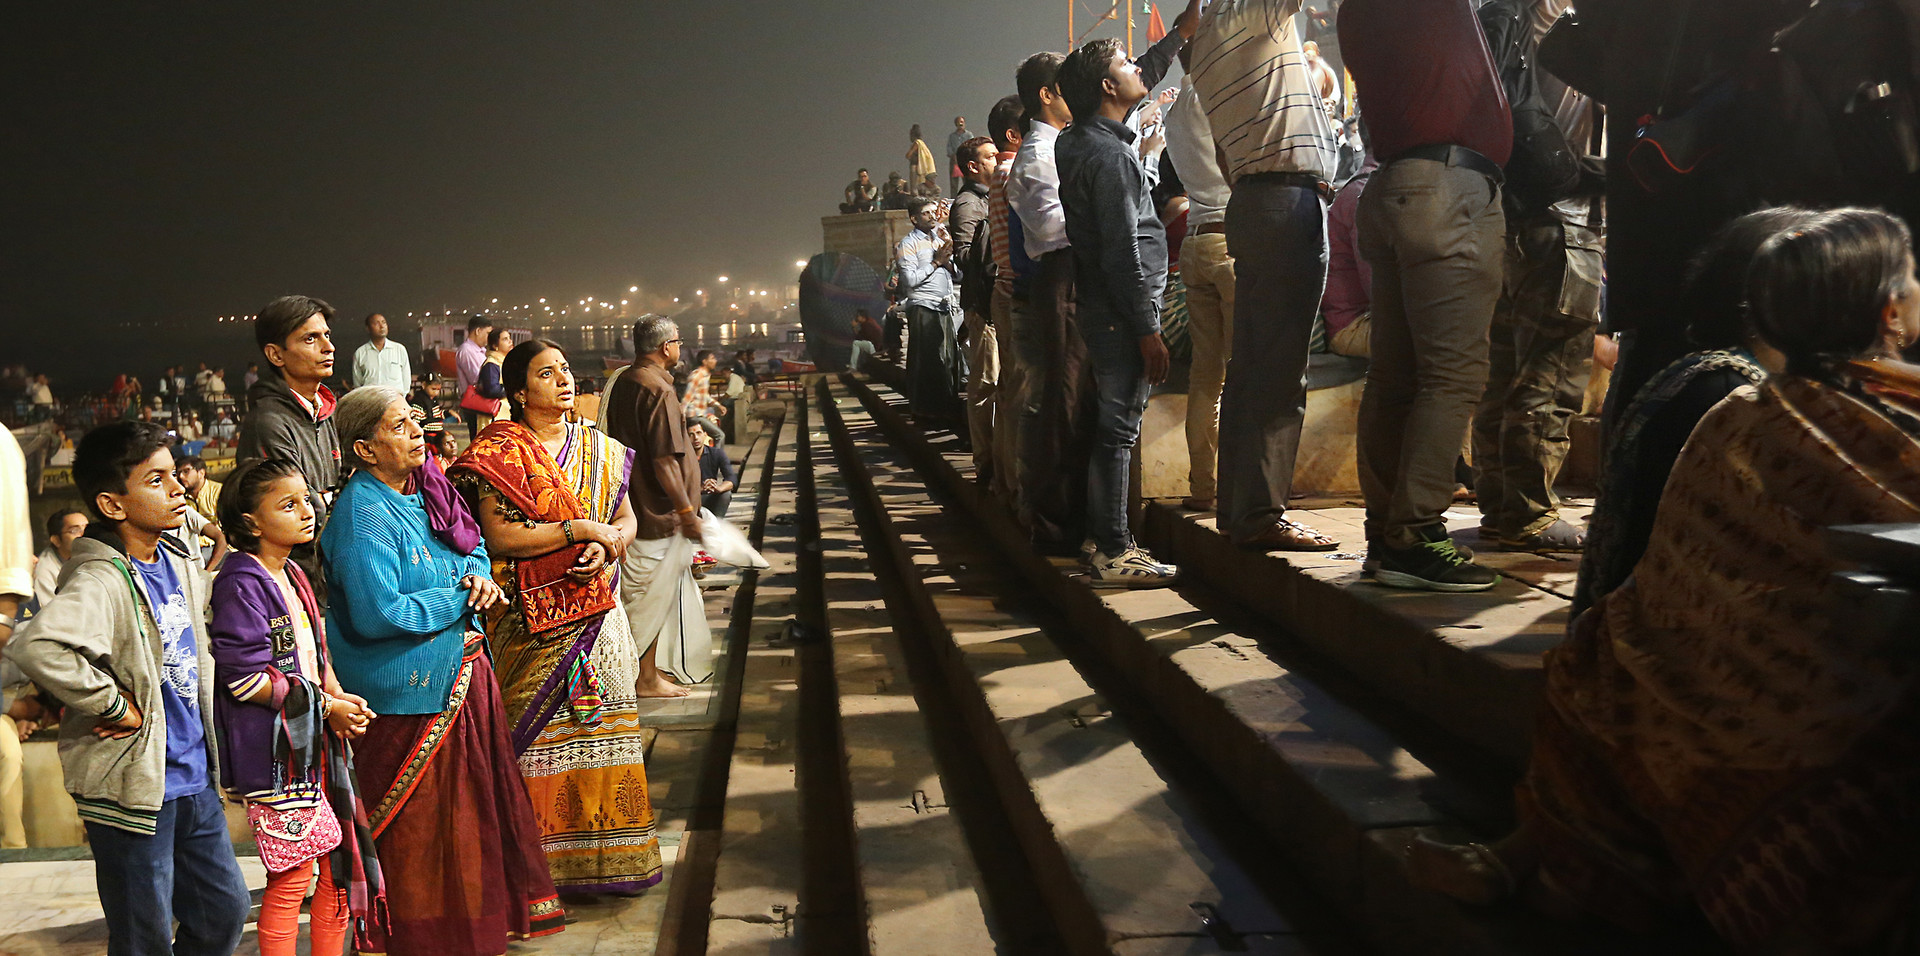 Night at the ghat